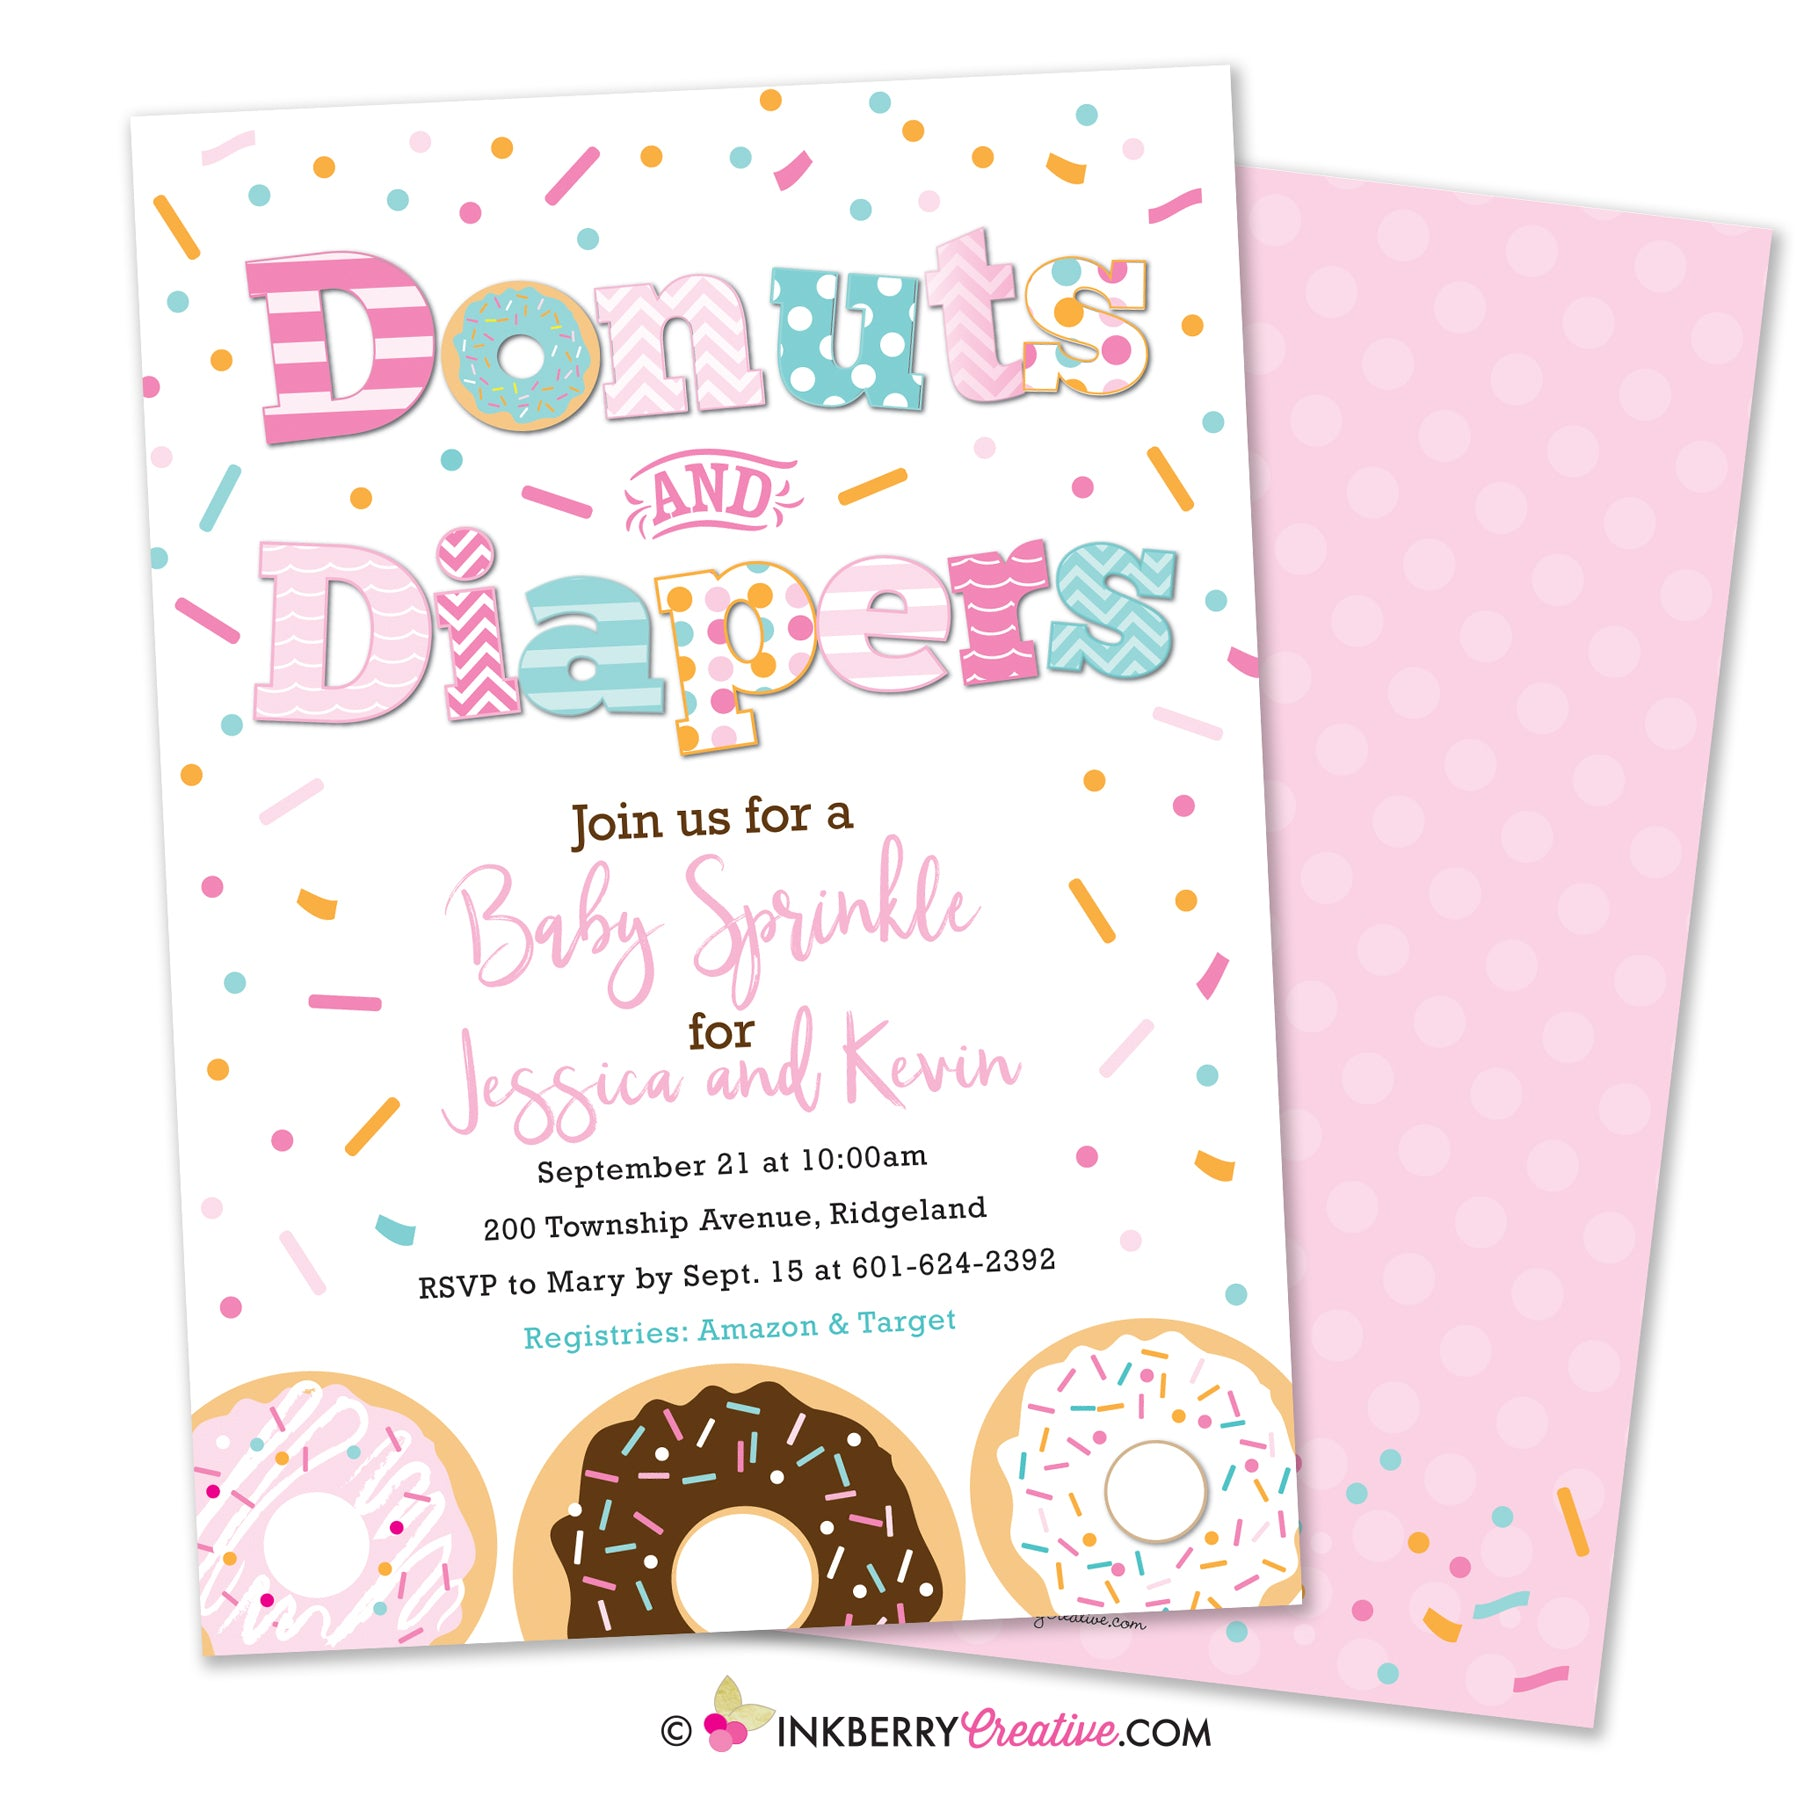 Donuts And Diapers Baby Girl Sprinkle Baby Shower Invitation Whit Inkberry Creative Inc